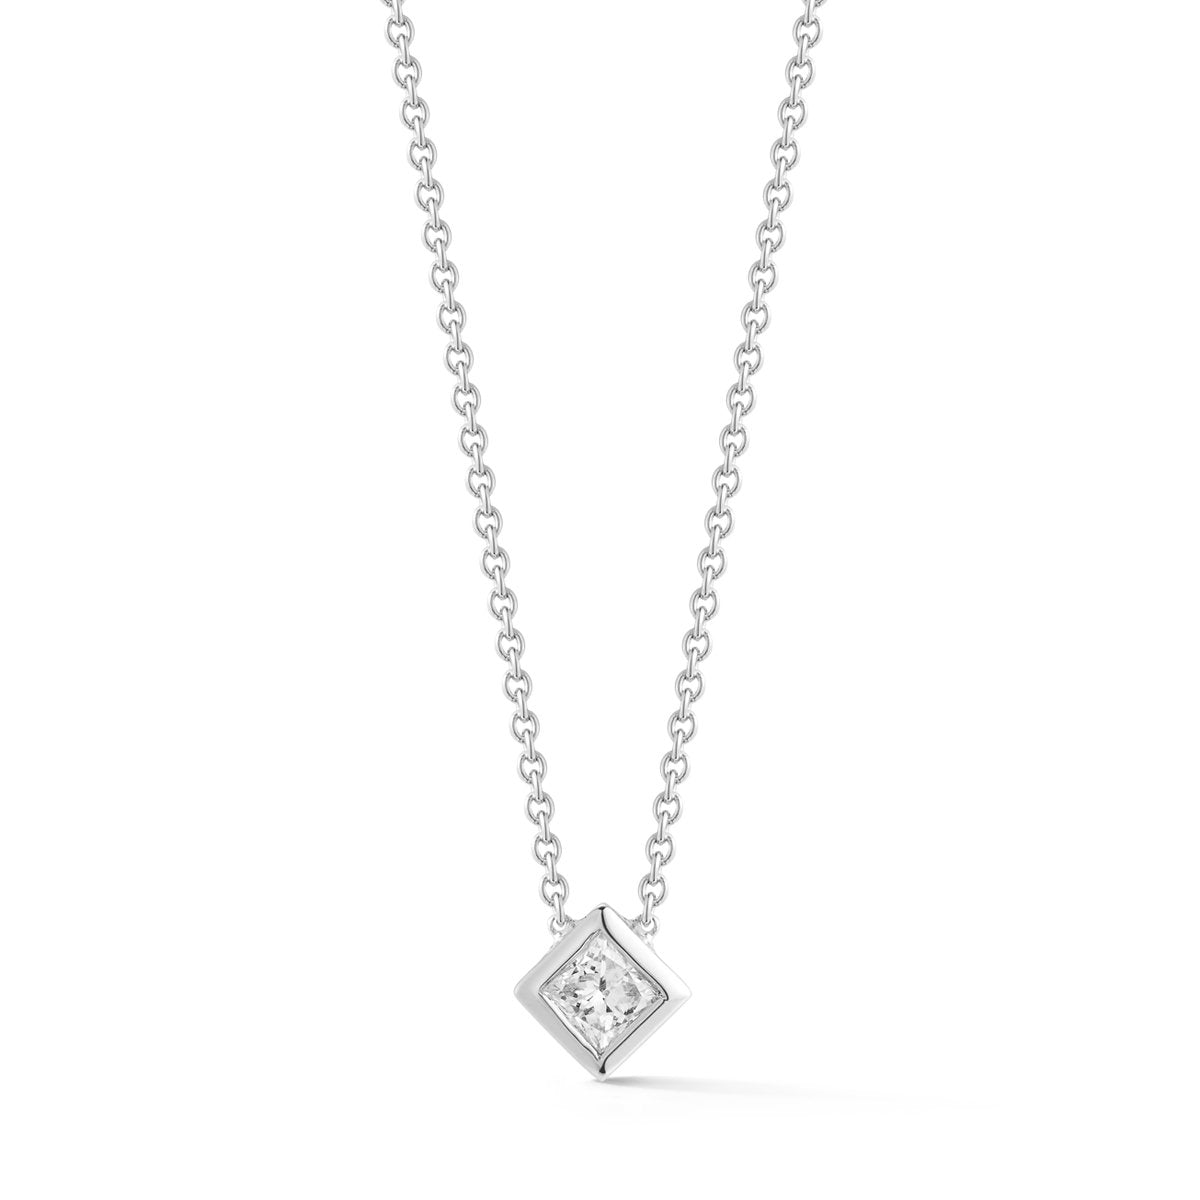 Small Princess Diamond Necklace - STONE AND STRAND